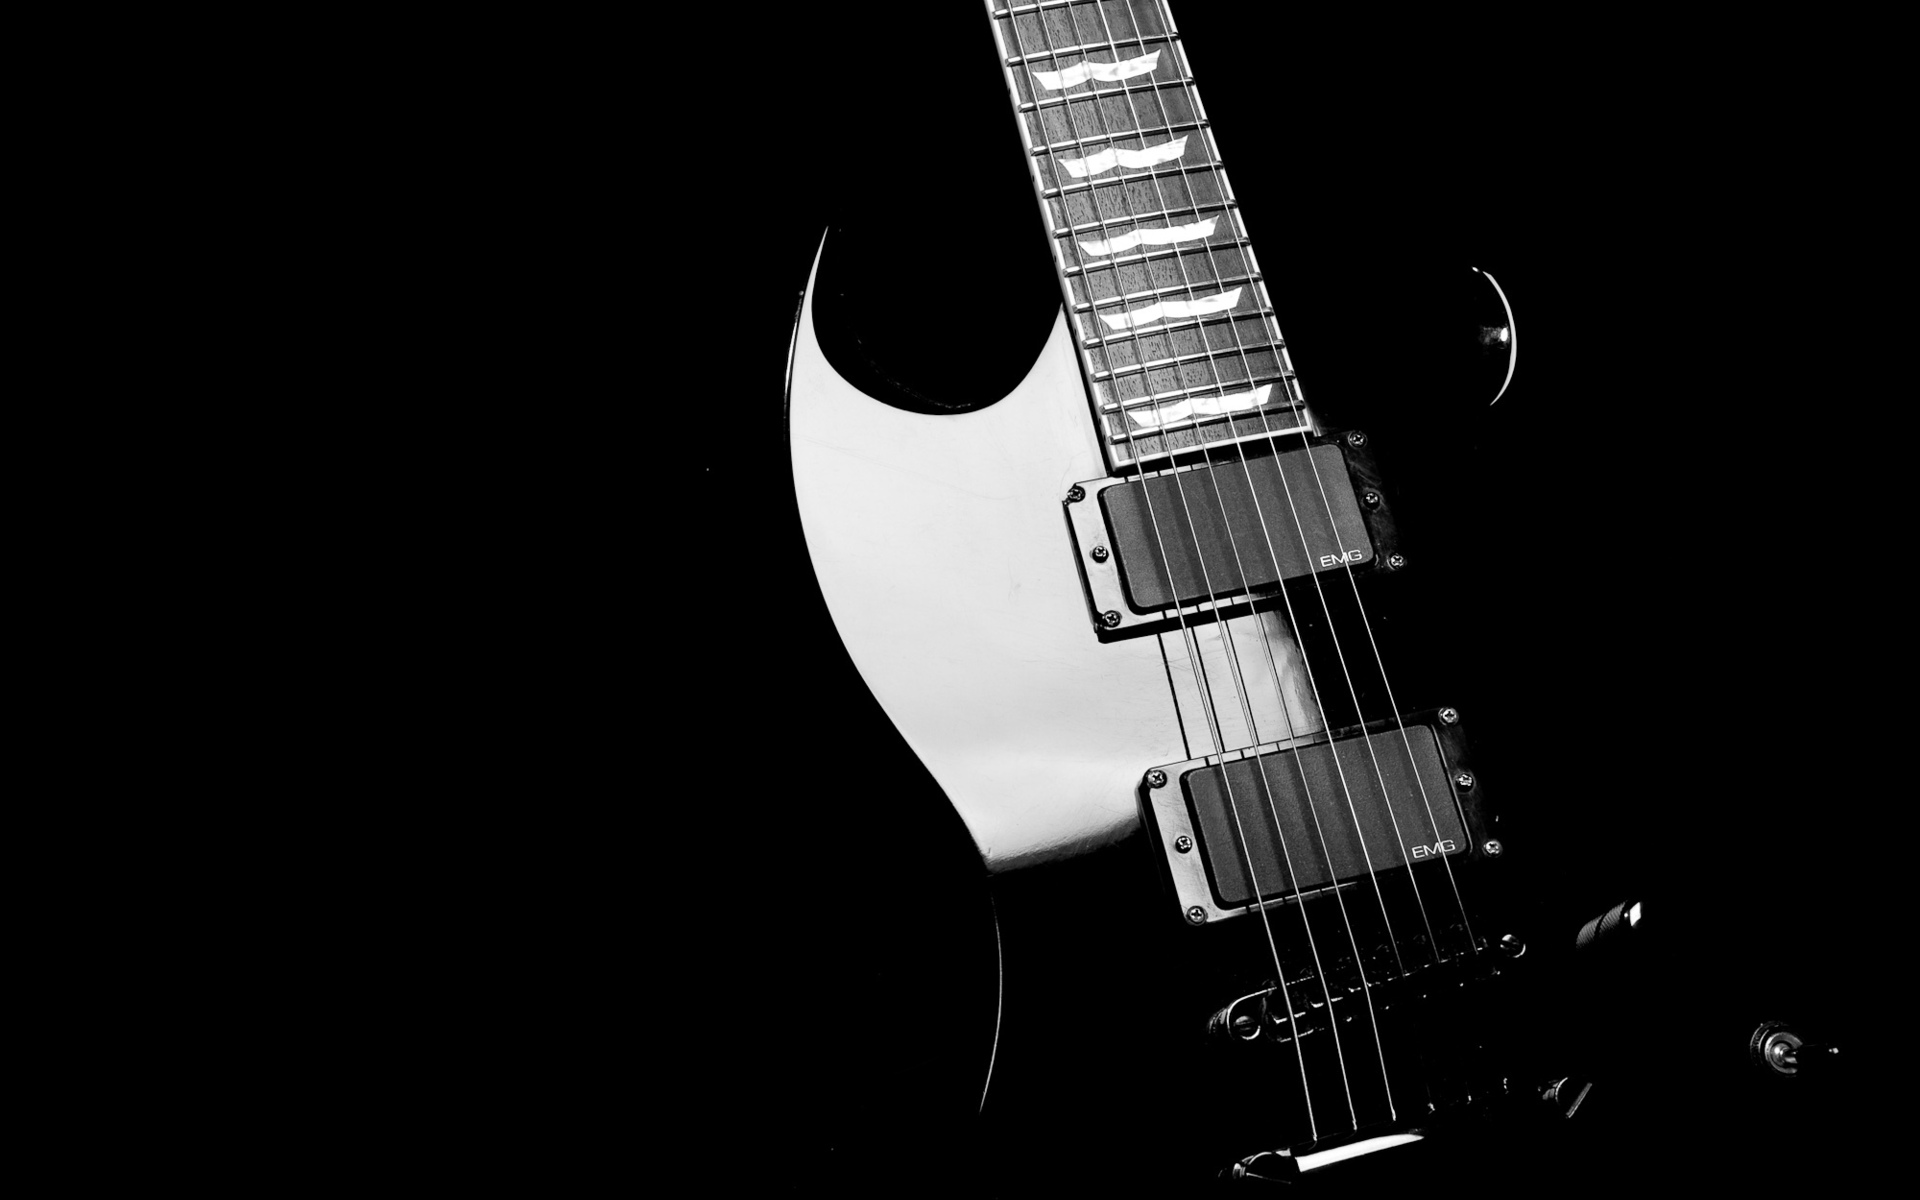 Guitar Wide Wallpapers - Wallpaper, High Definition, High ...